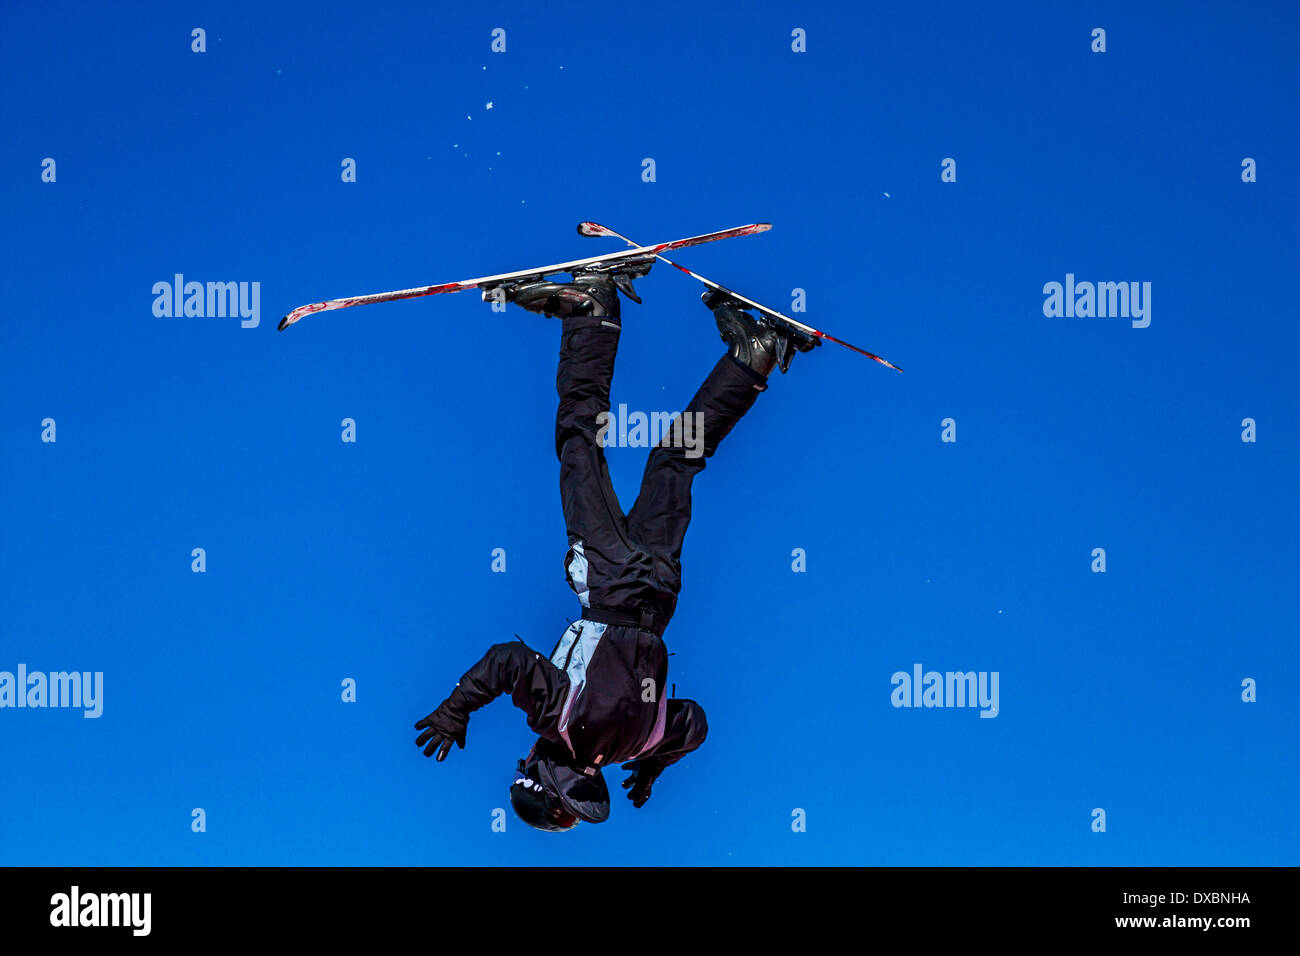 Out of control skier upside down - Stock Image